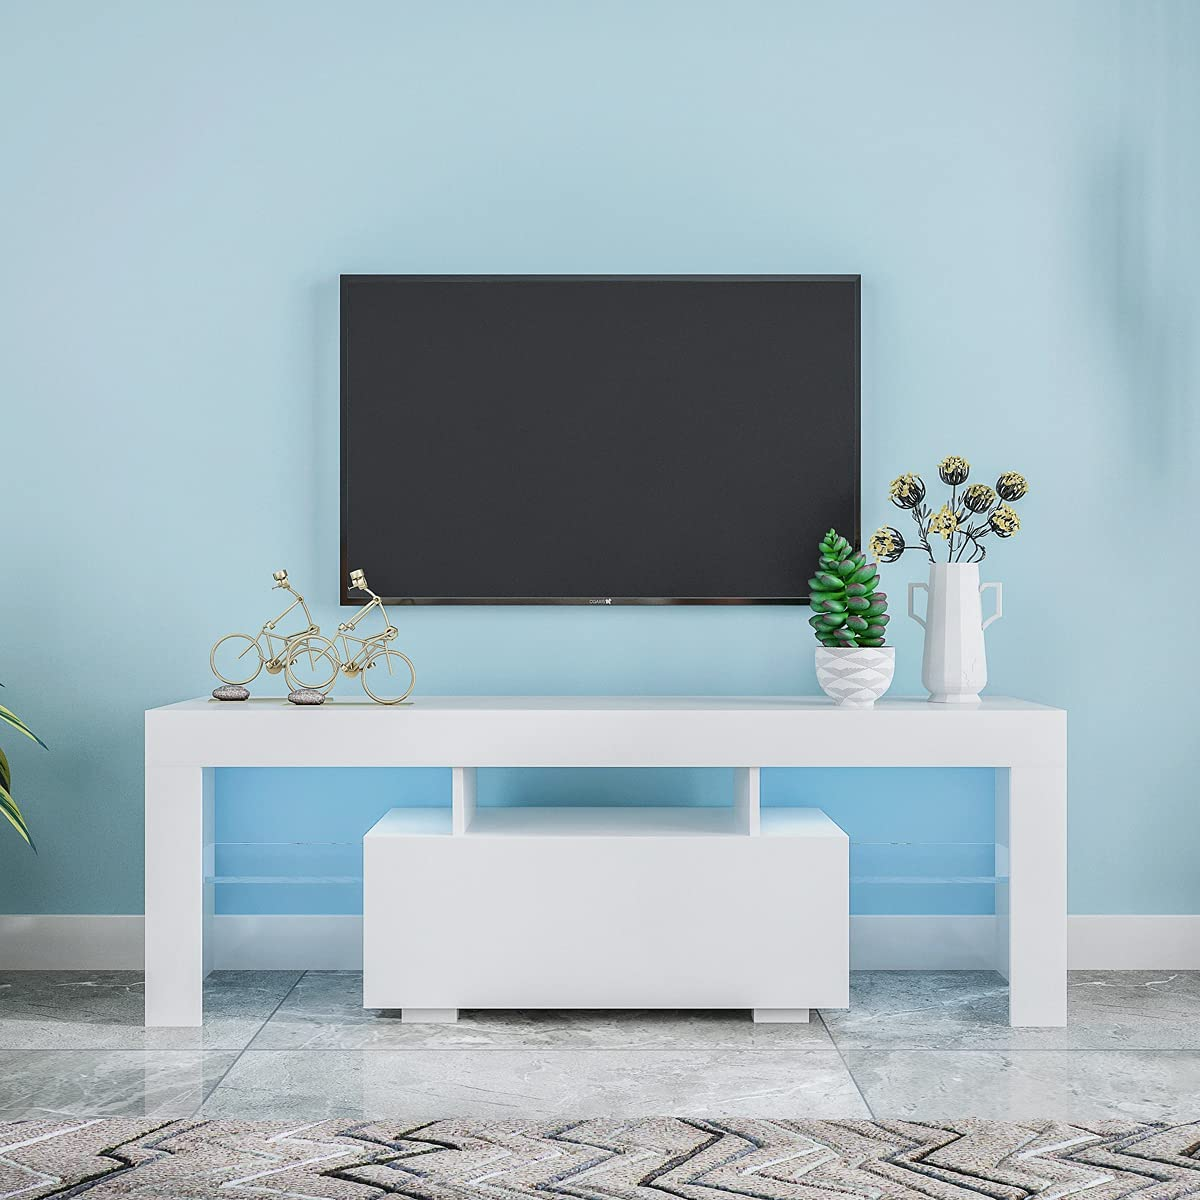 Entertainment TV Super beauty product restock quality top Stand Large Li Base with LED Ultra-Cheap Deals